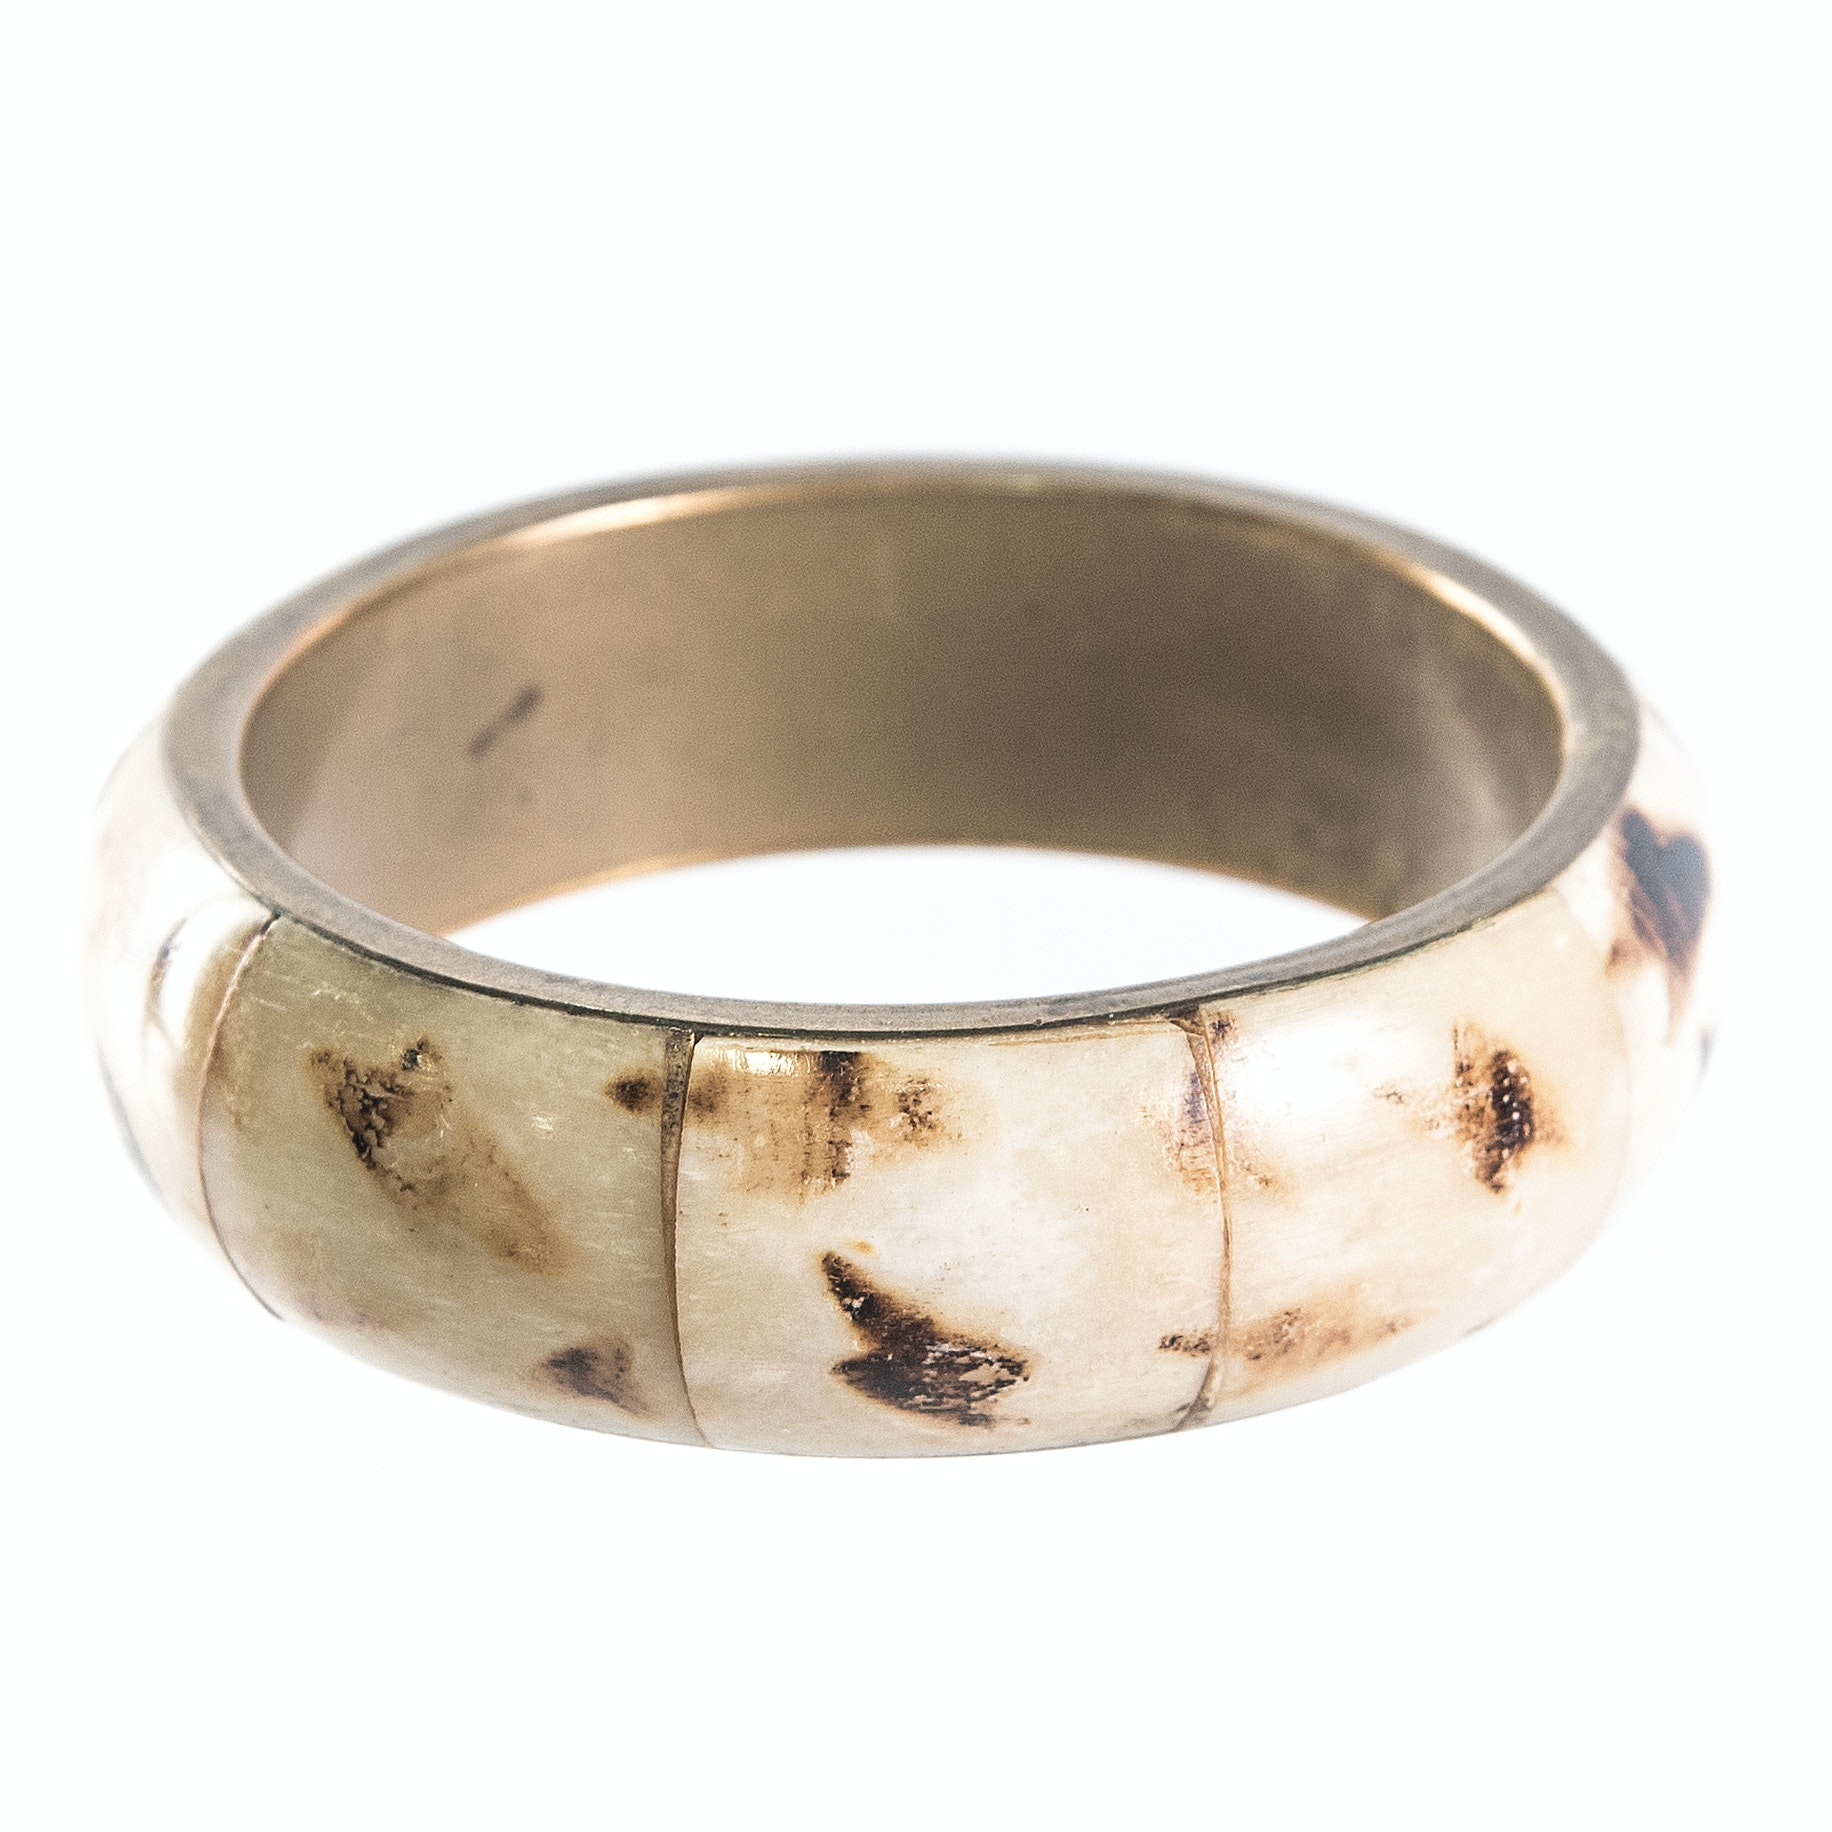 Bone Over Brass Bangle Bracelet